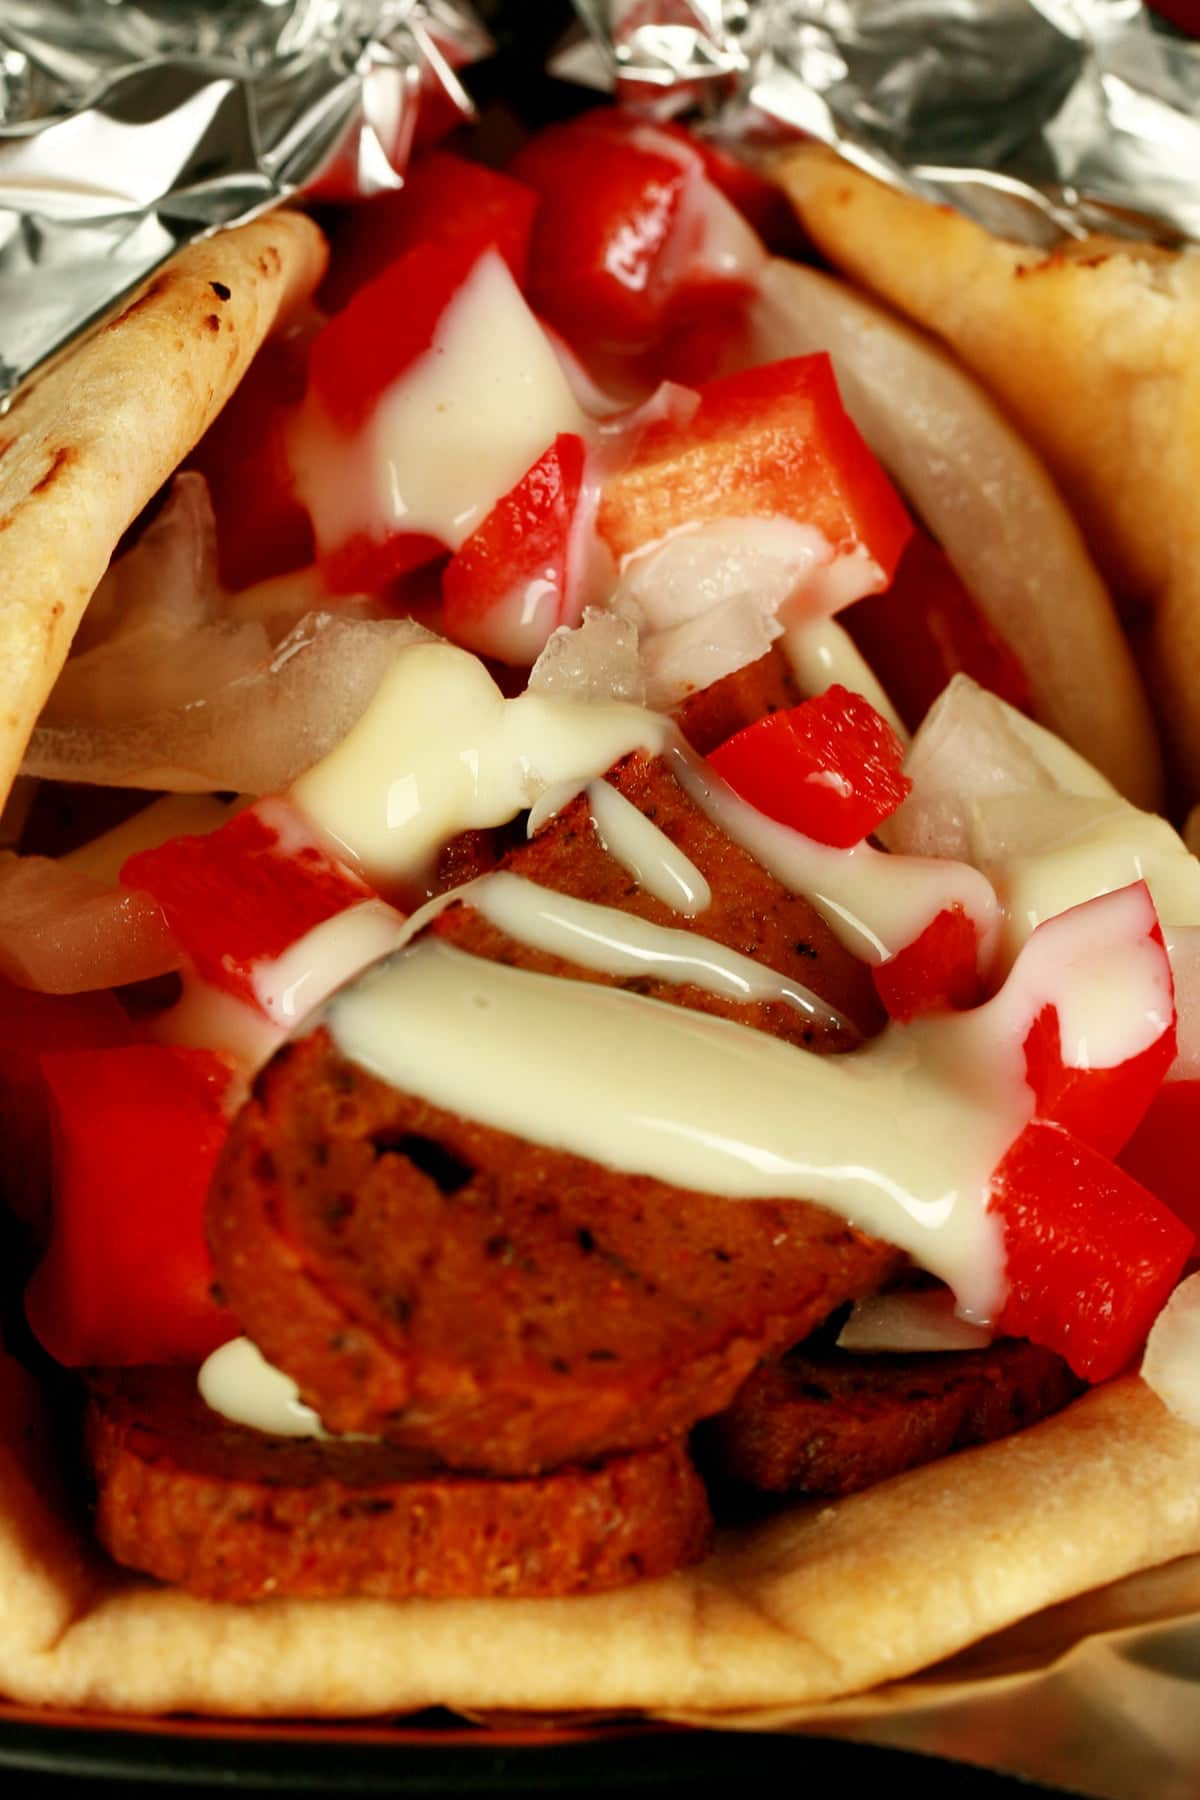 "Close up view of a vegan donair - a pita bread folded around a pile of vegan donair ""meat"" slices, chopped red peppers, and donair sauce drizzled on top."